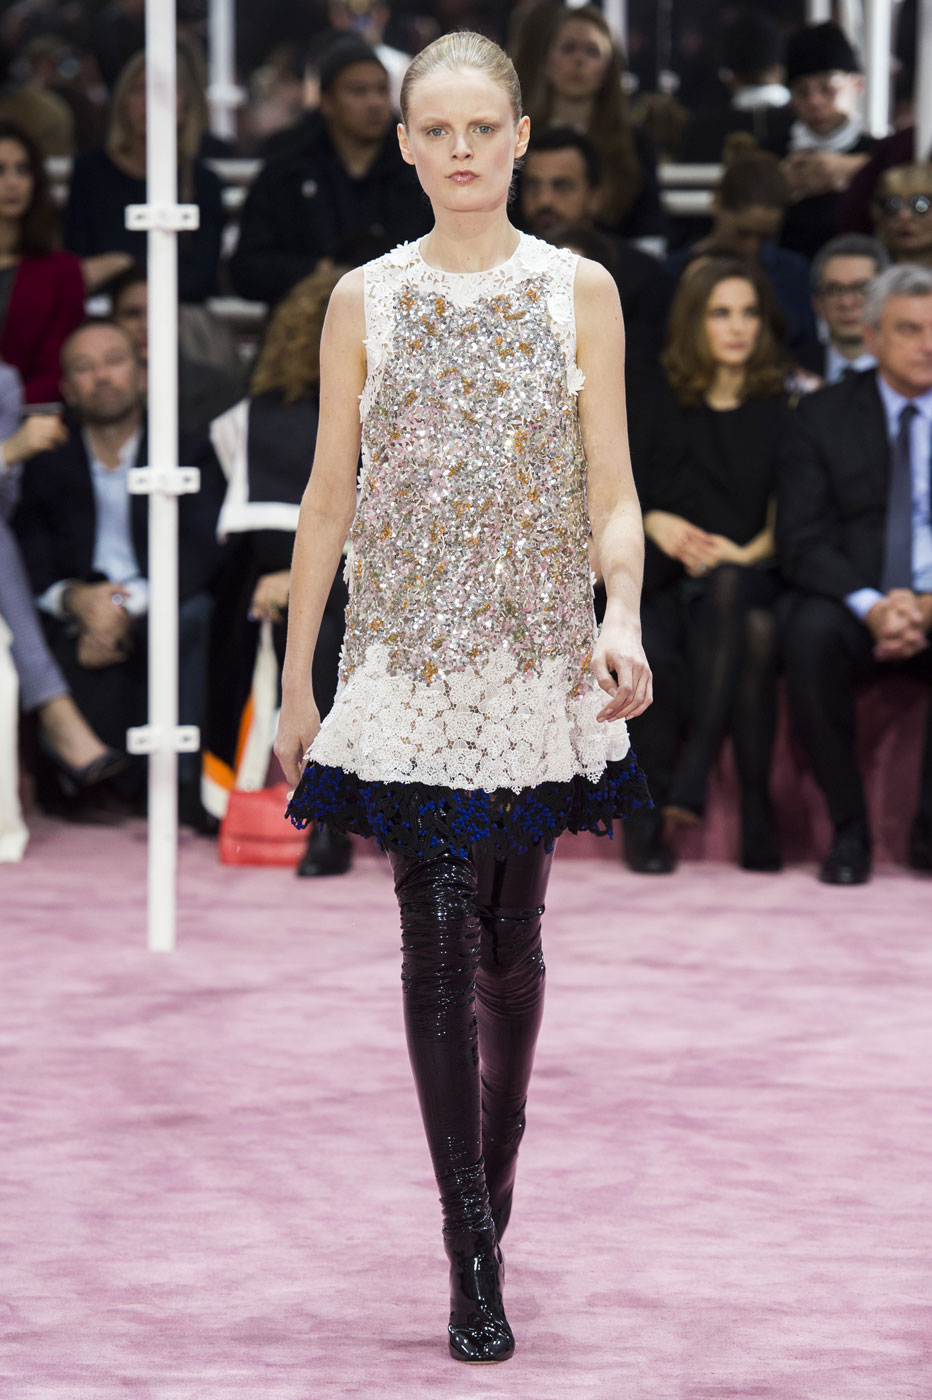 Christian-Dior-fashion-runway-show-haute-couture-paris-spring-summer-2015-the-impression-067